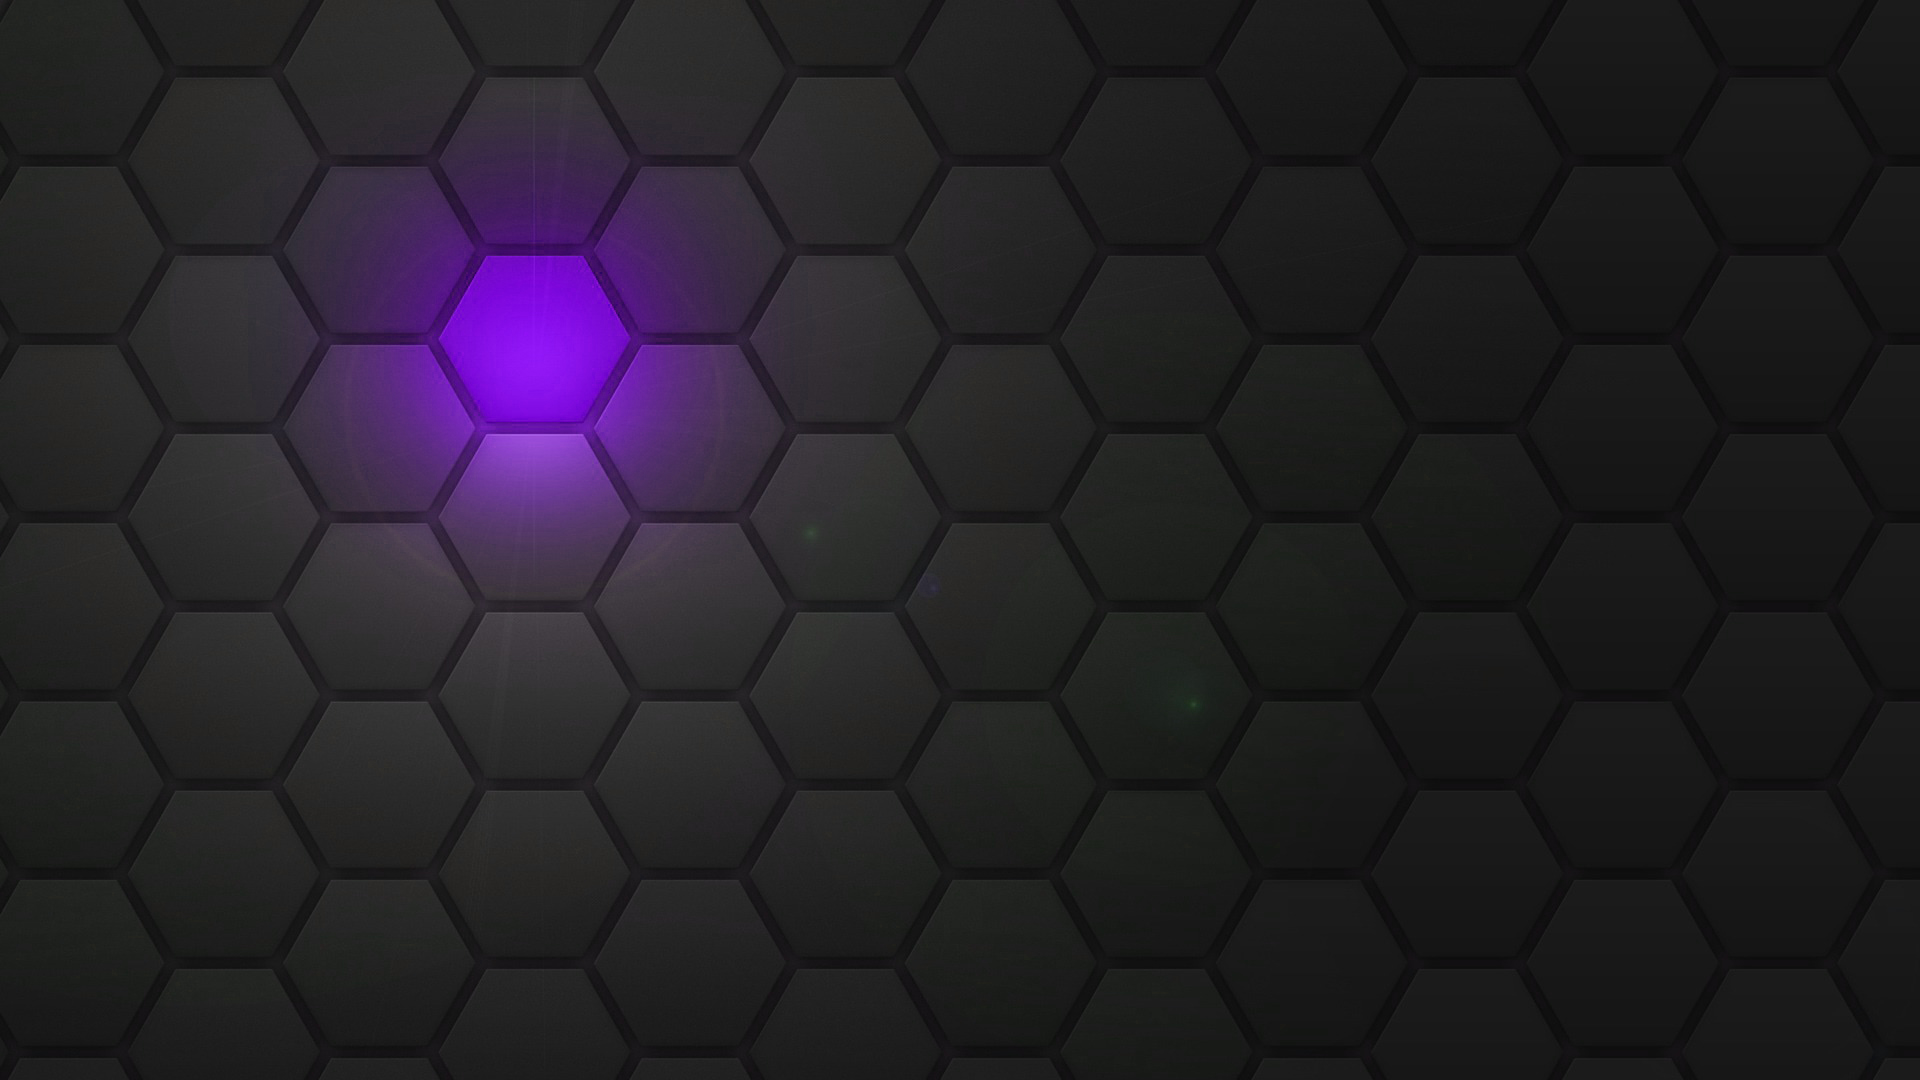 Purple Wallpaper Images for Free Download